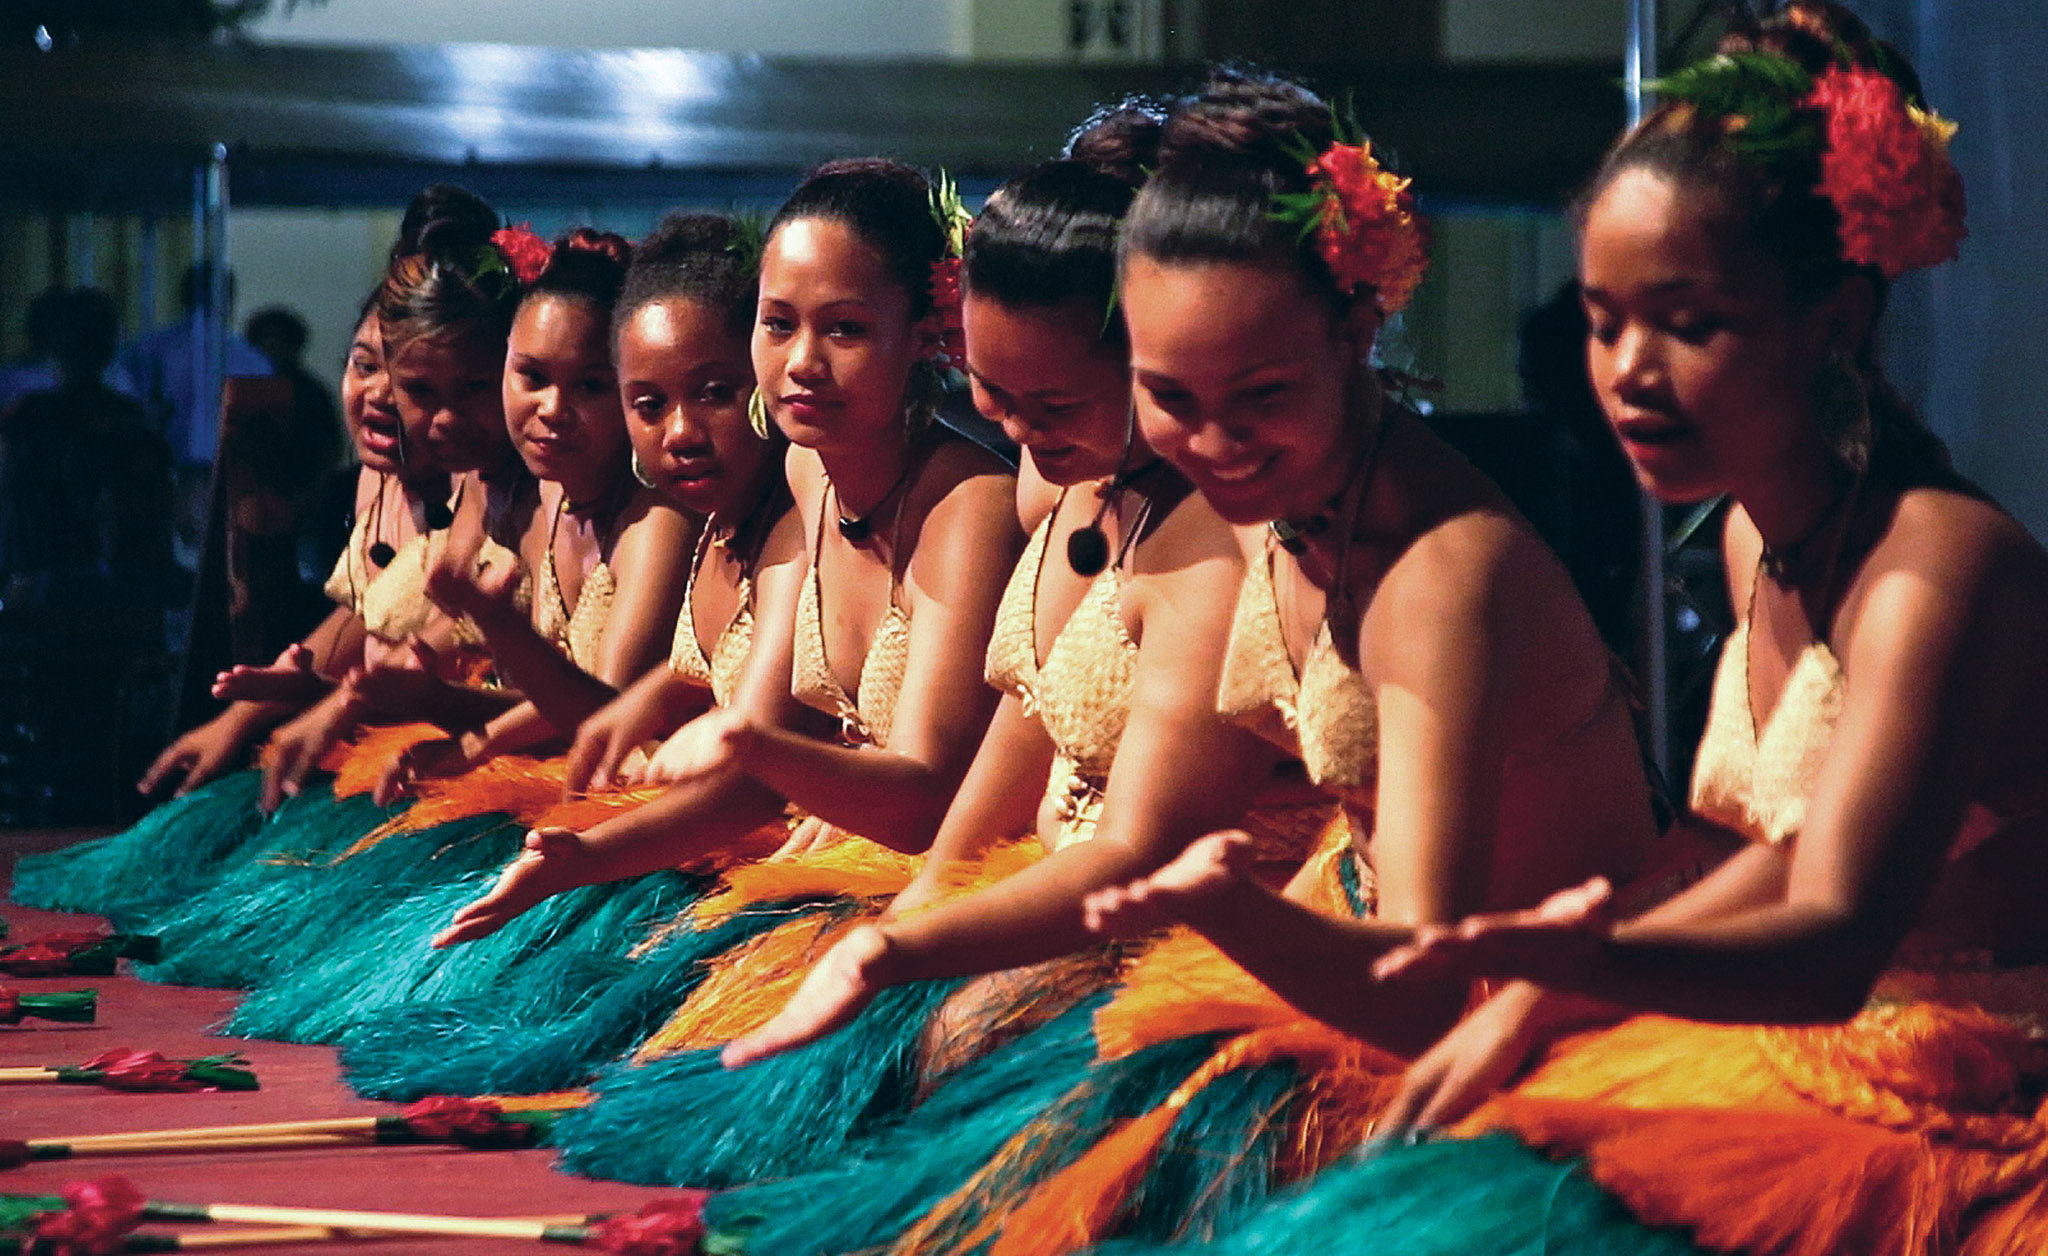 This photo taken on July 29, 2014 shows ...This photo taken on July 29, 2014 shows traditional dancers performing at the opening night of the 45th Pacific Islands Forum in the Palau city of Koror.  Pacific island leaders of the 15 nations represented at the Pacific Islands Forum will renew calls this week for meaningful action on climate change at the regional summit, amid fears rising seas will swamp their low-lying nations.